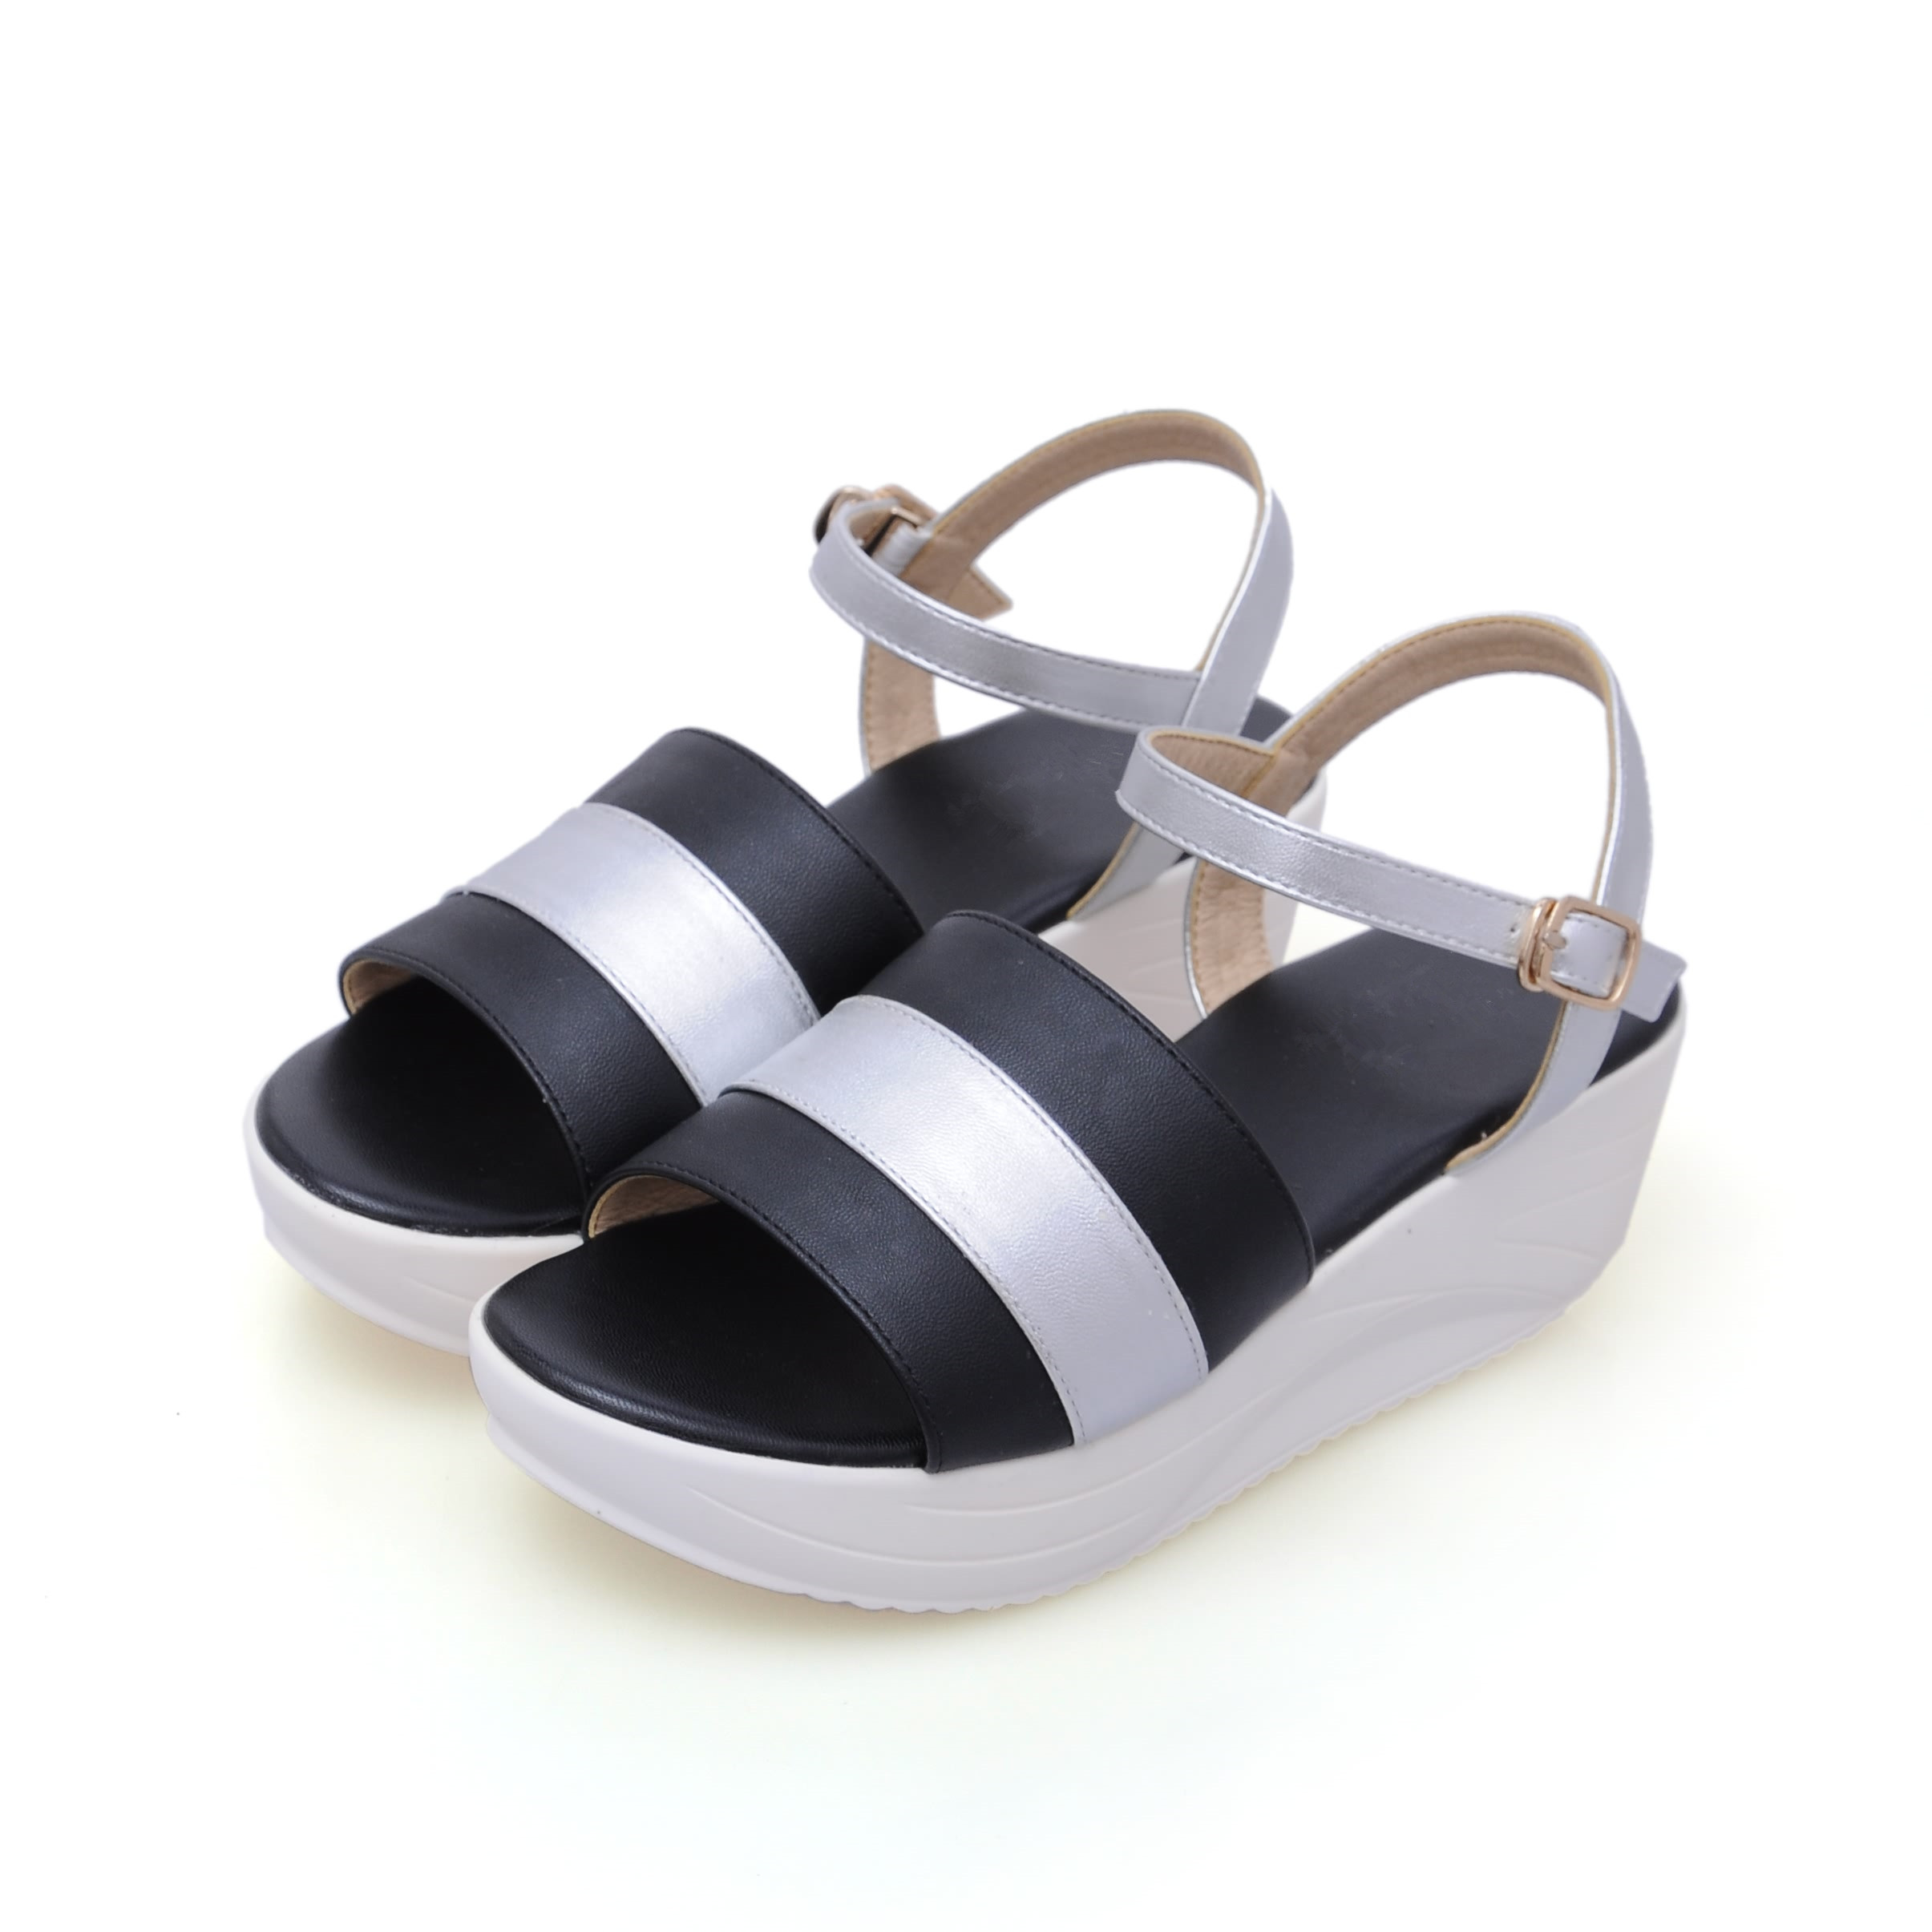 Comfortable Genuine Leather New Fashion Summer Shoes Women Wedges Sandals High Heels Casual Mixed Color Sandal Shoes SMYBK-57